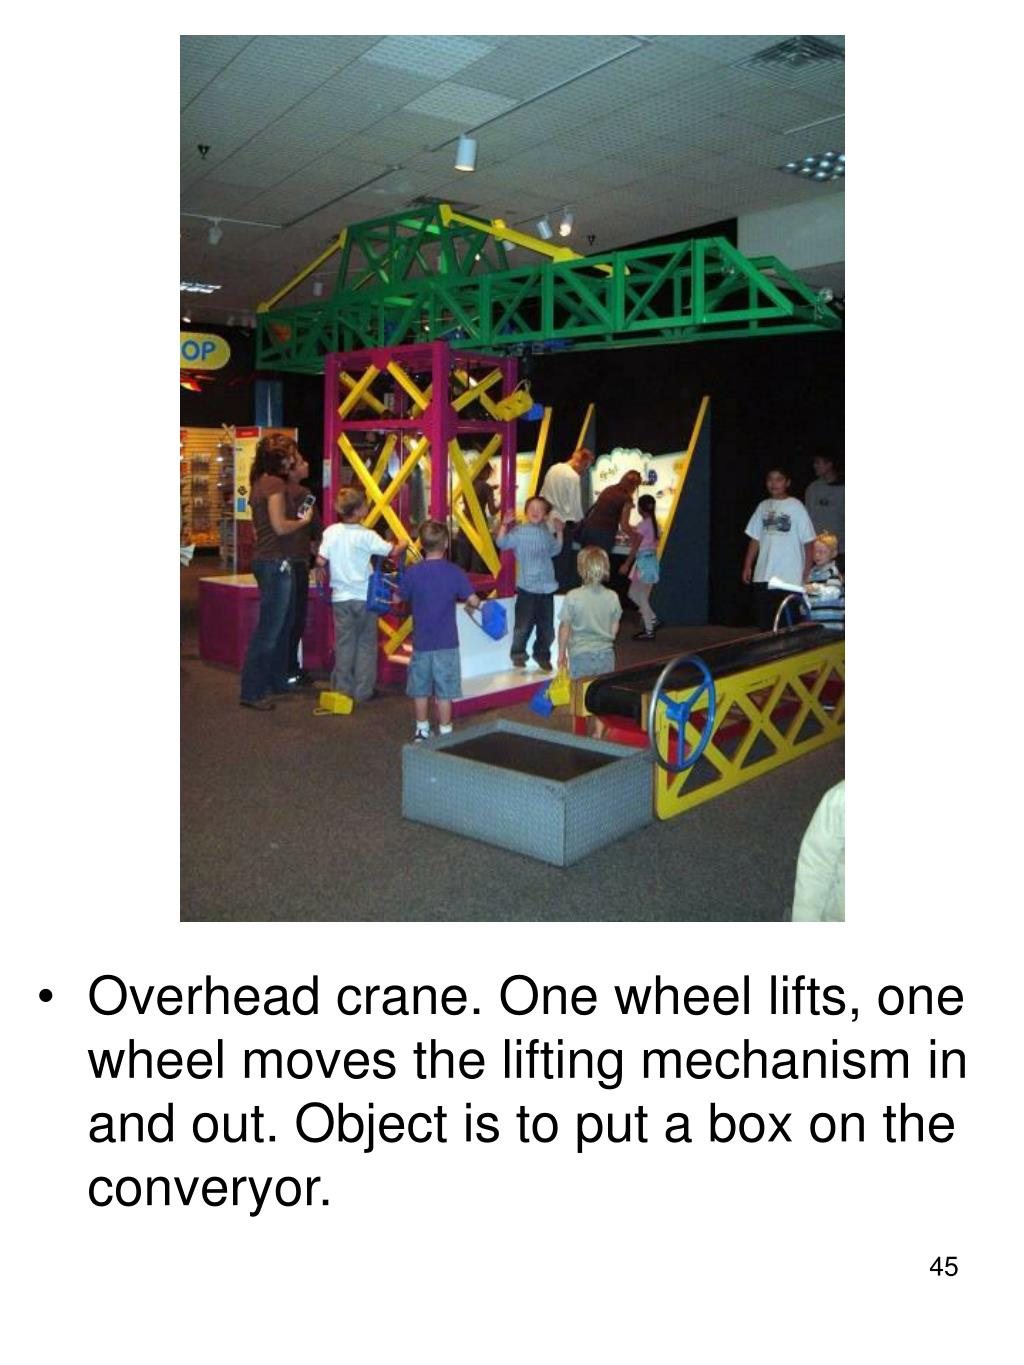 Overhead crane. One wheel lifts, one wheel moves the lifting mechanism in and out. Object is to put a box on the converyor.